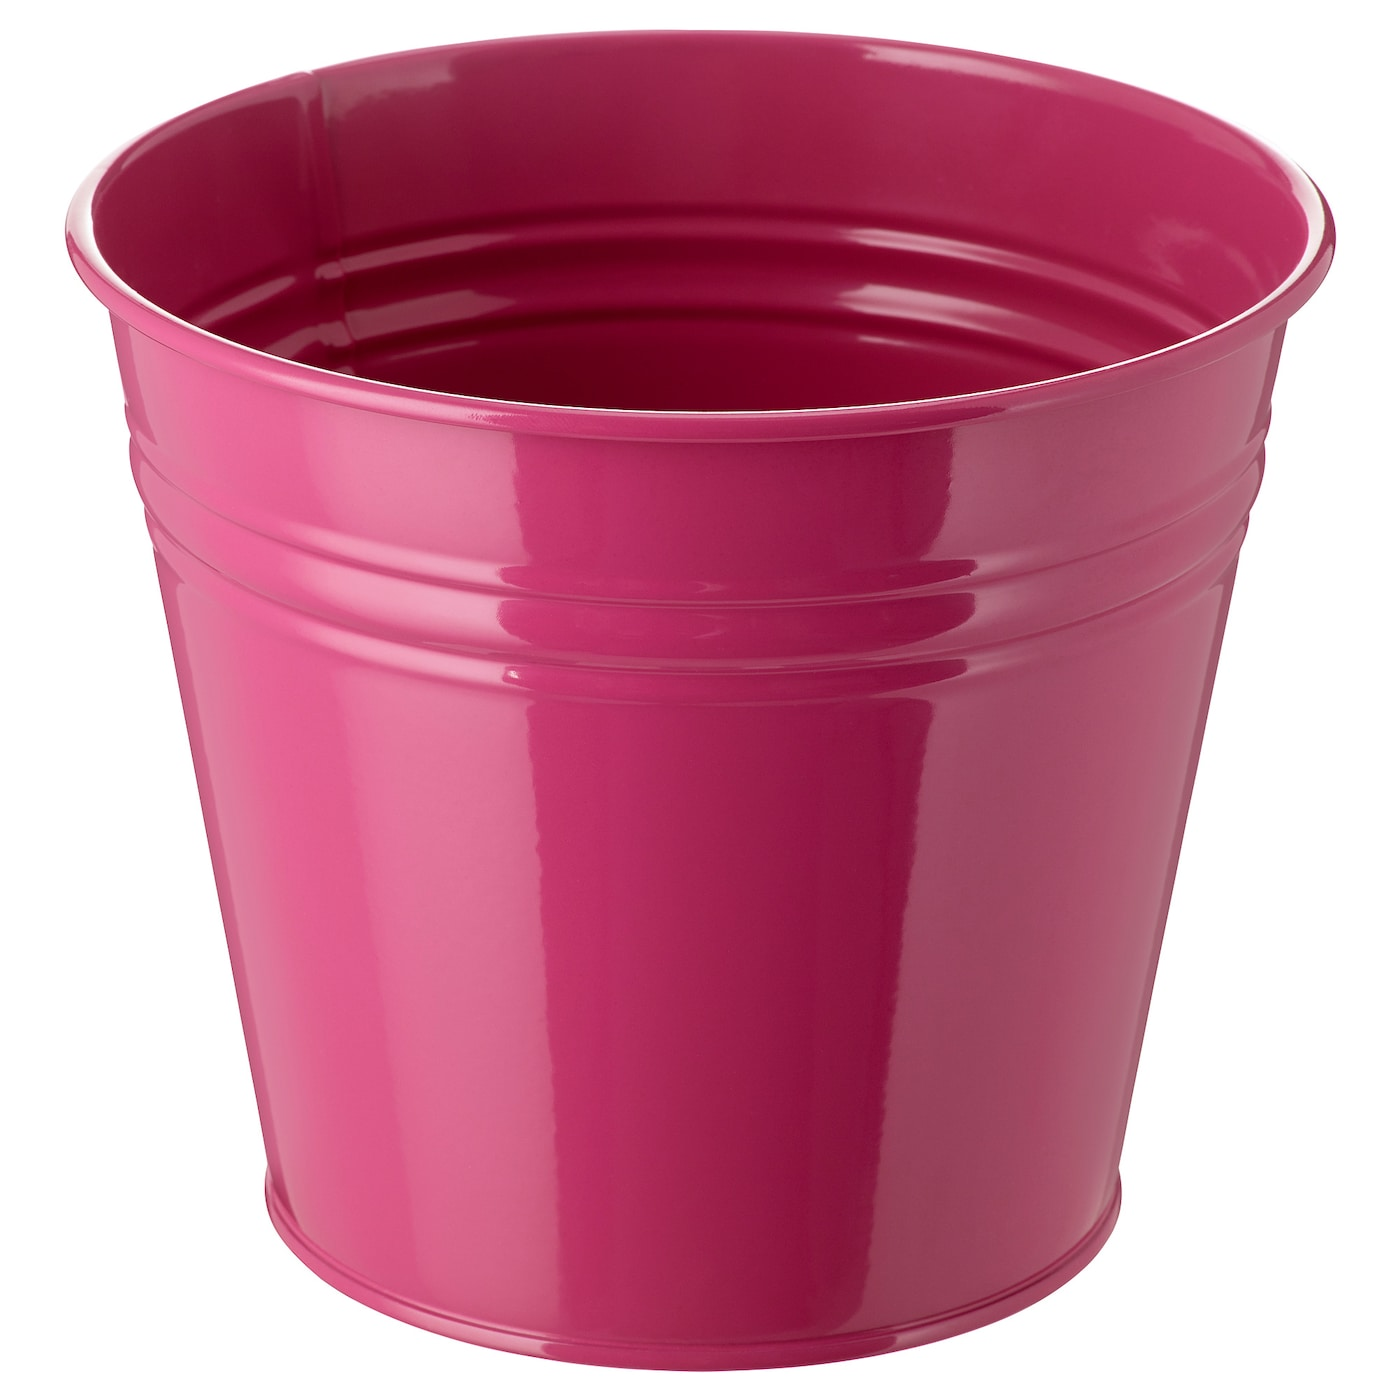 socker cache pot int rieur ext rieur rose 15 cm ikea. Black Bedroom Furniture Sets. Home Design Ideas